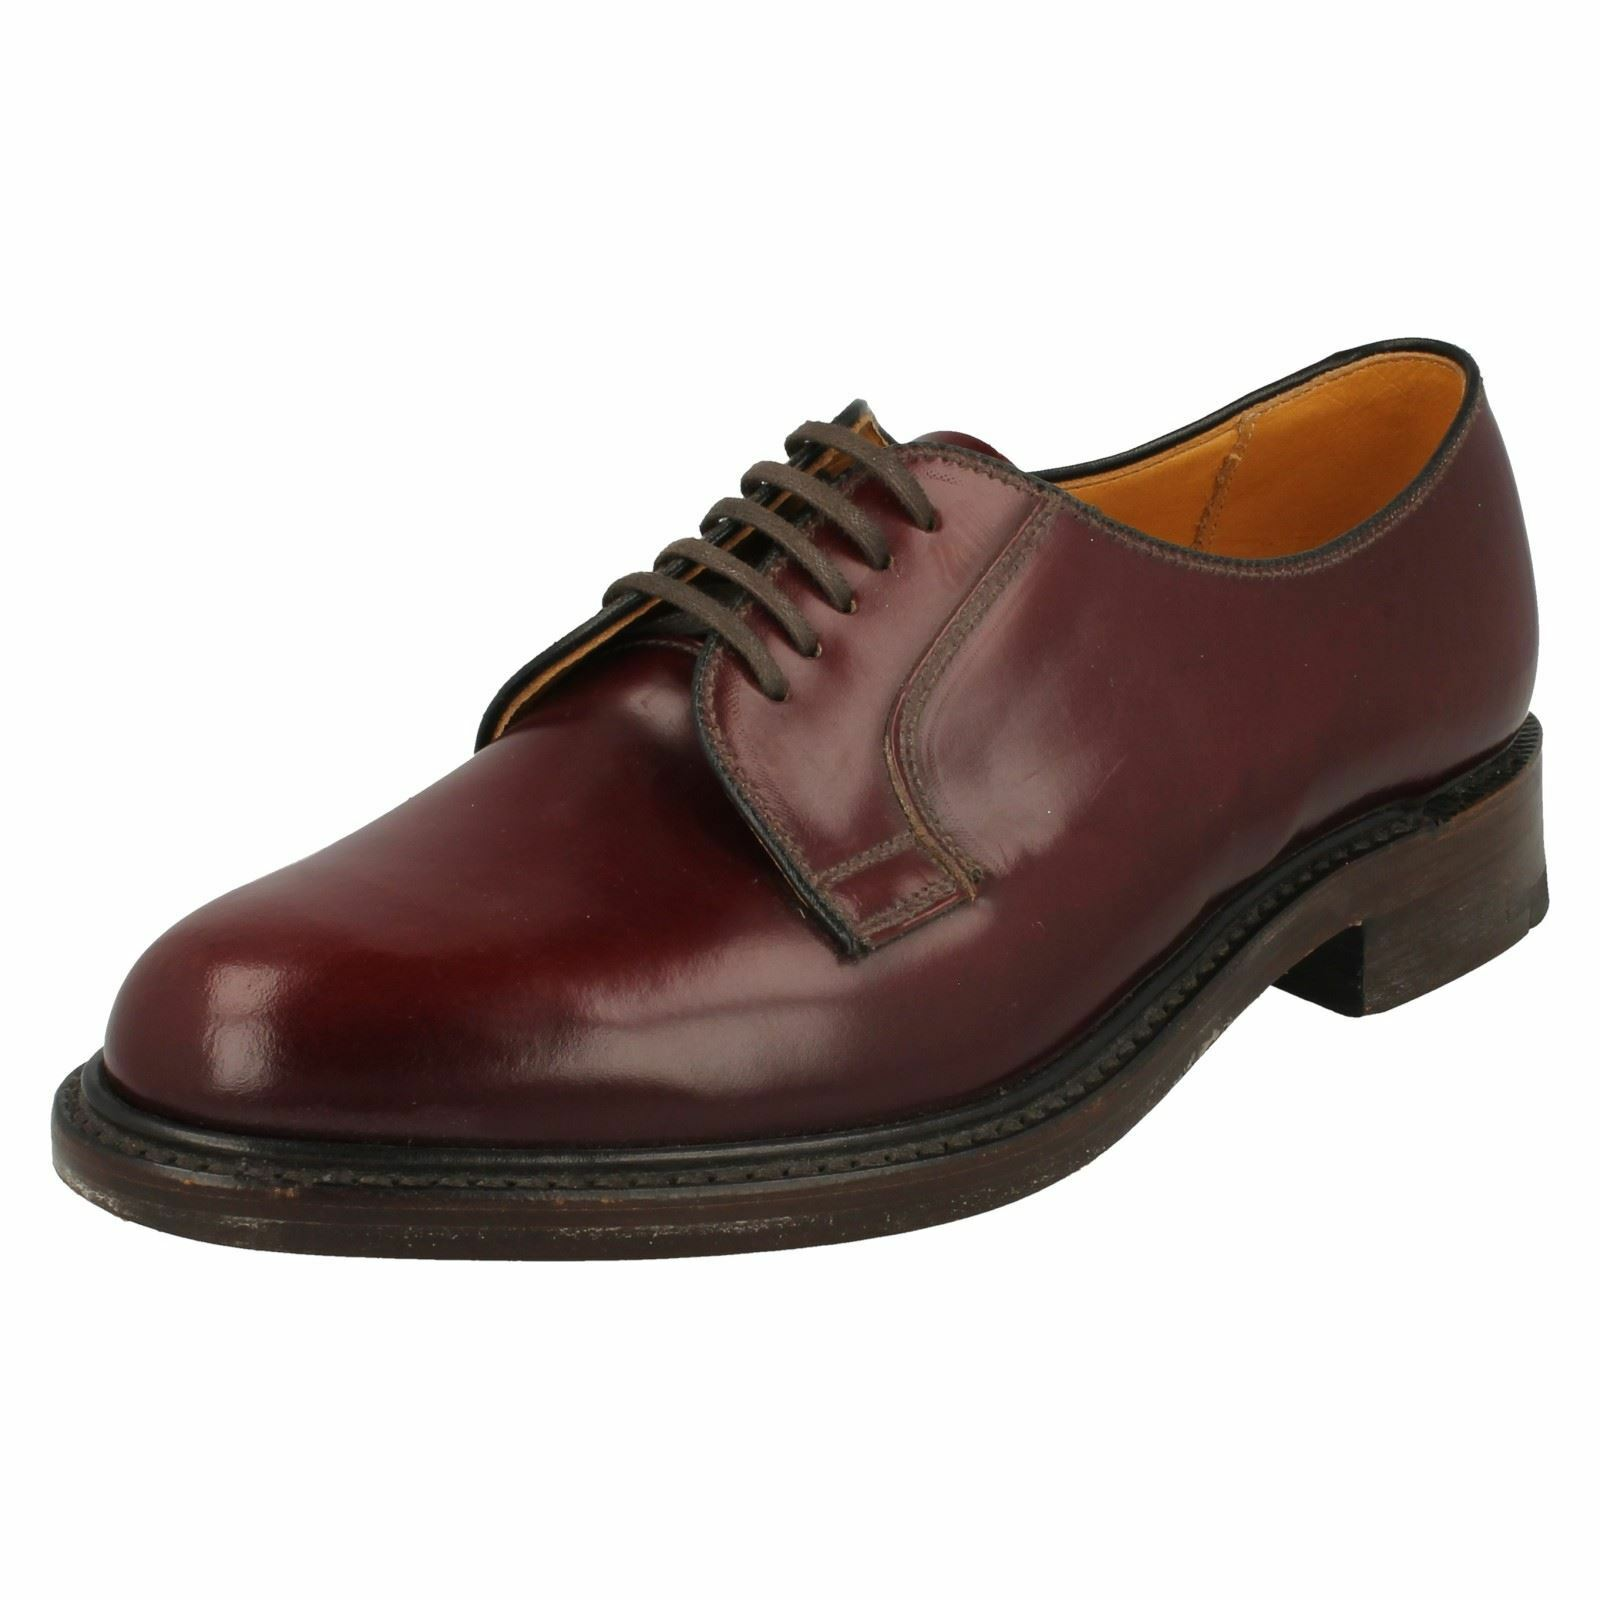 Mens Loake Classic Leather Lace Up schuhe - 771T 771T 771T 5913fc